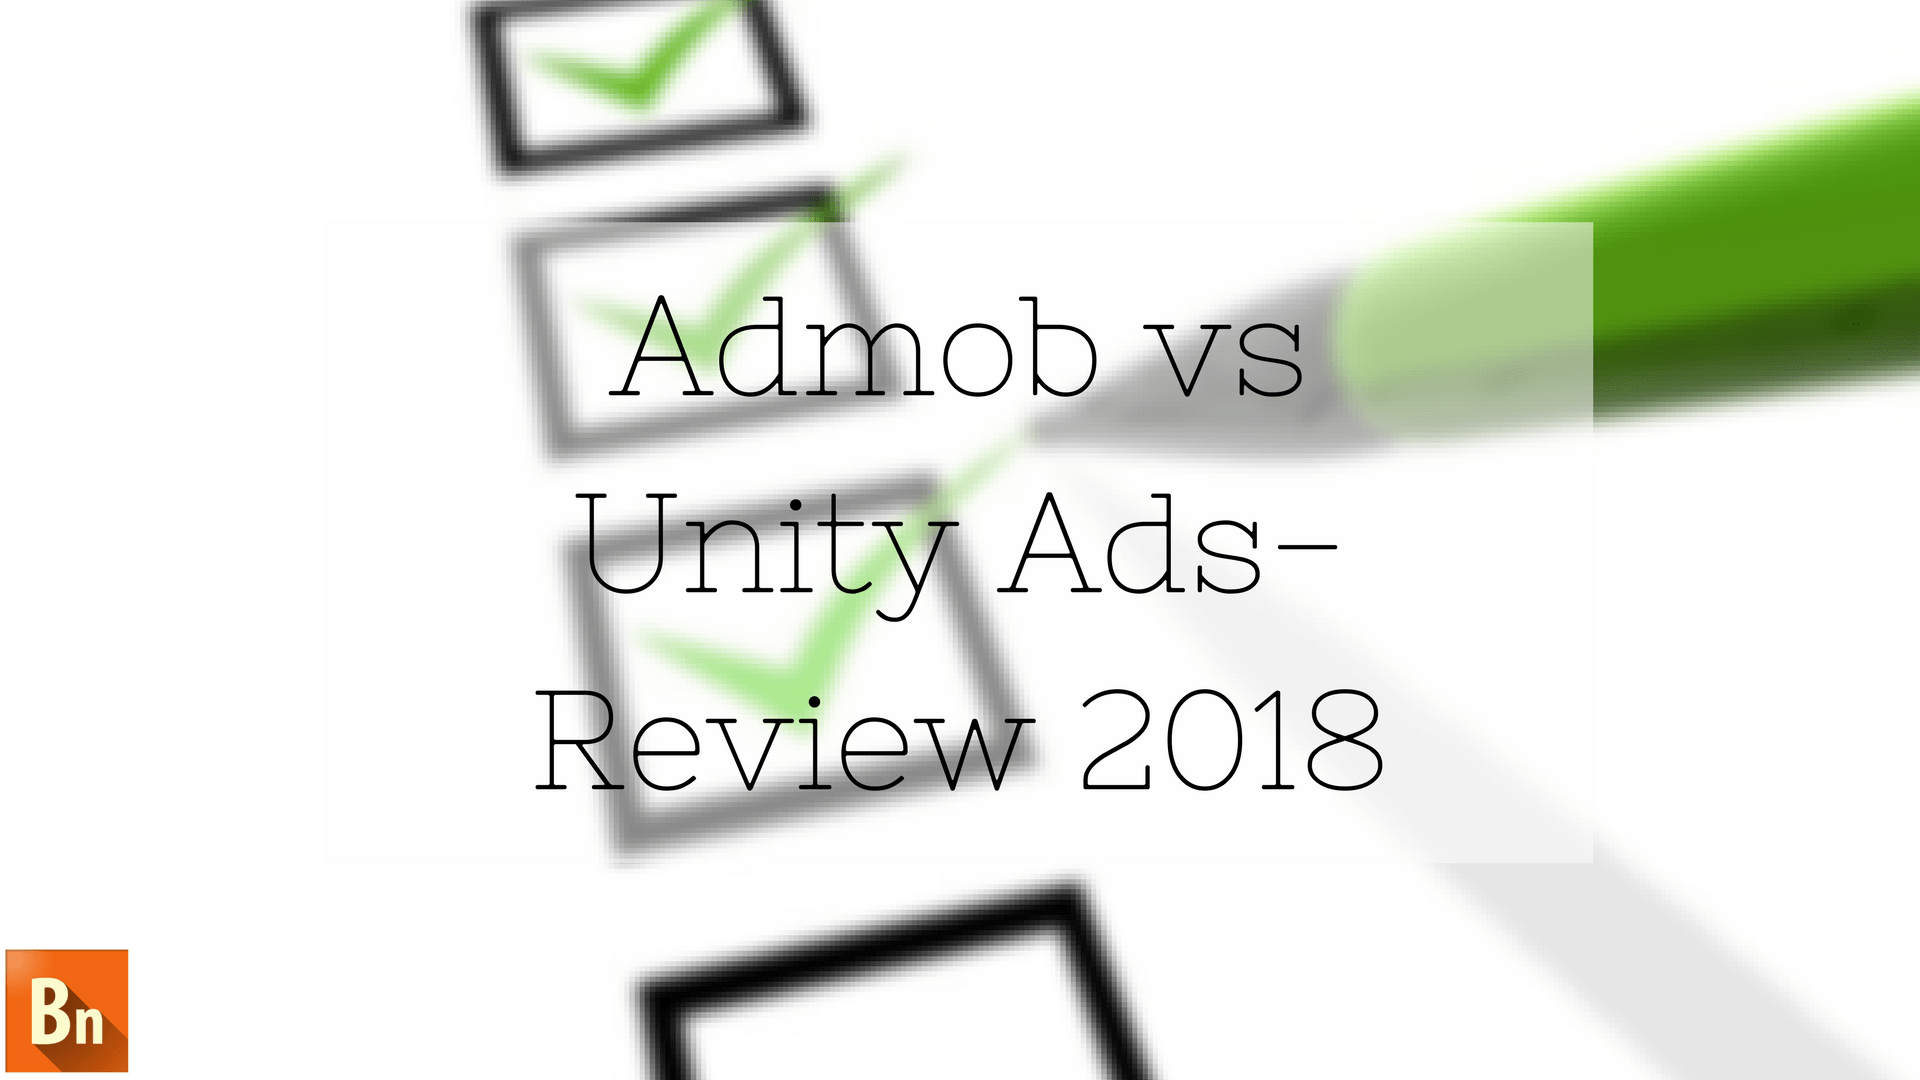 Admob vs Unity Ads- Review 2018